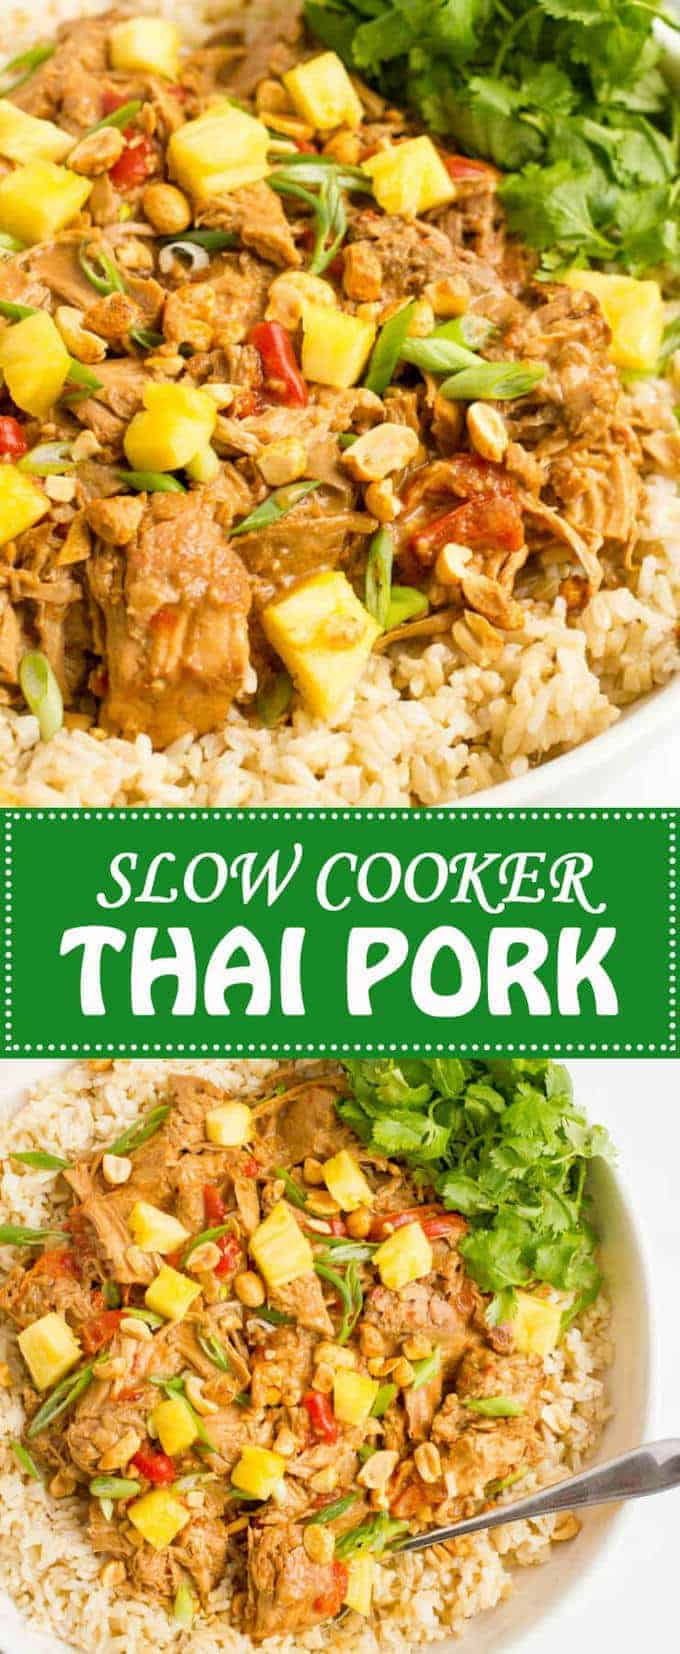 Slow cooker Thai pork is a quick and easy dinner to prep and comes out with tender chunks of pork and a rich, delicious peanut sauce! | www.familyfoodonthetable.com